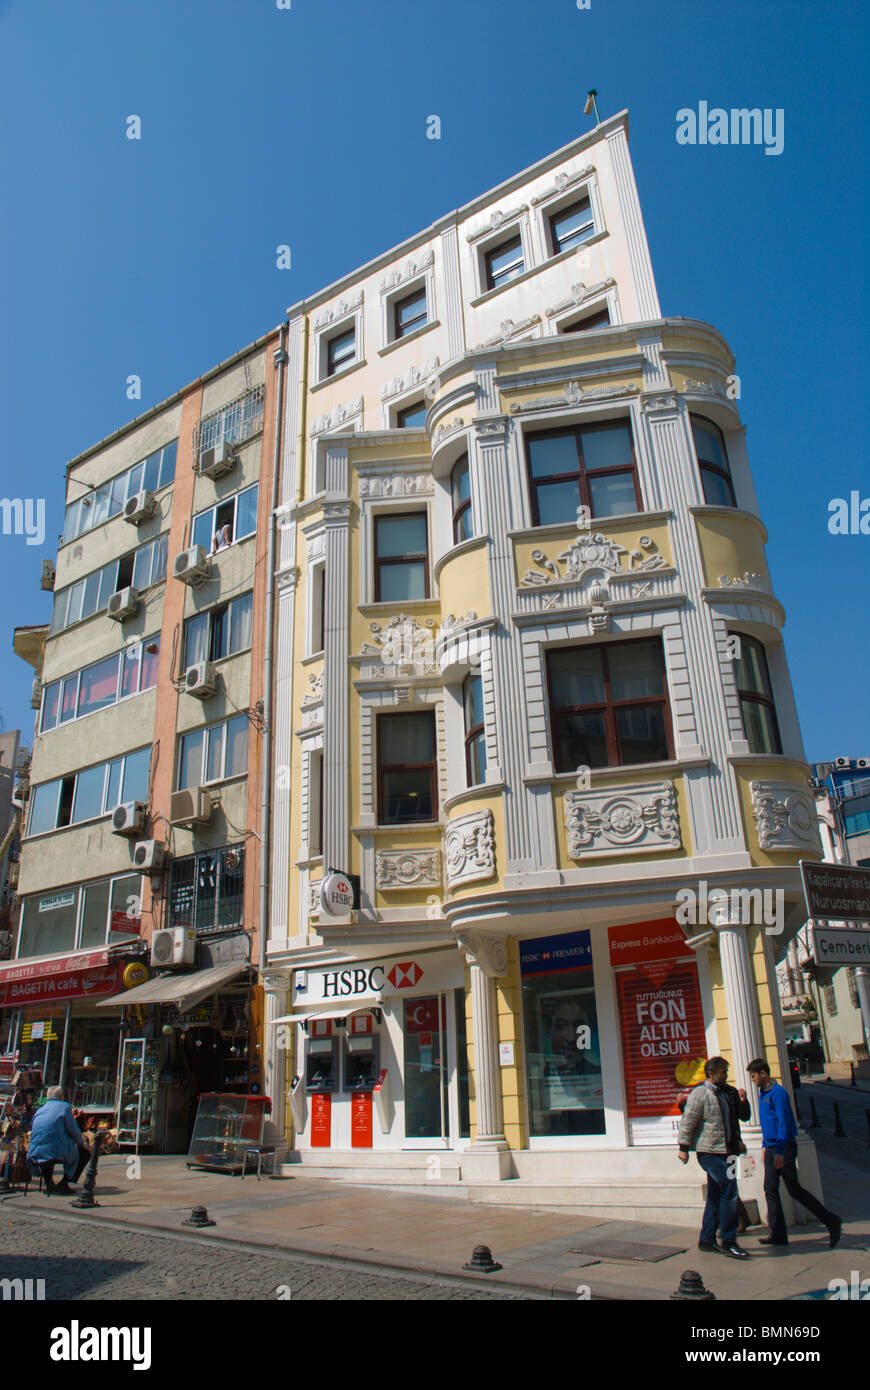 Architecture with HSBC bank branch Sultanahmet district